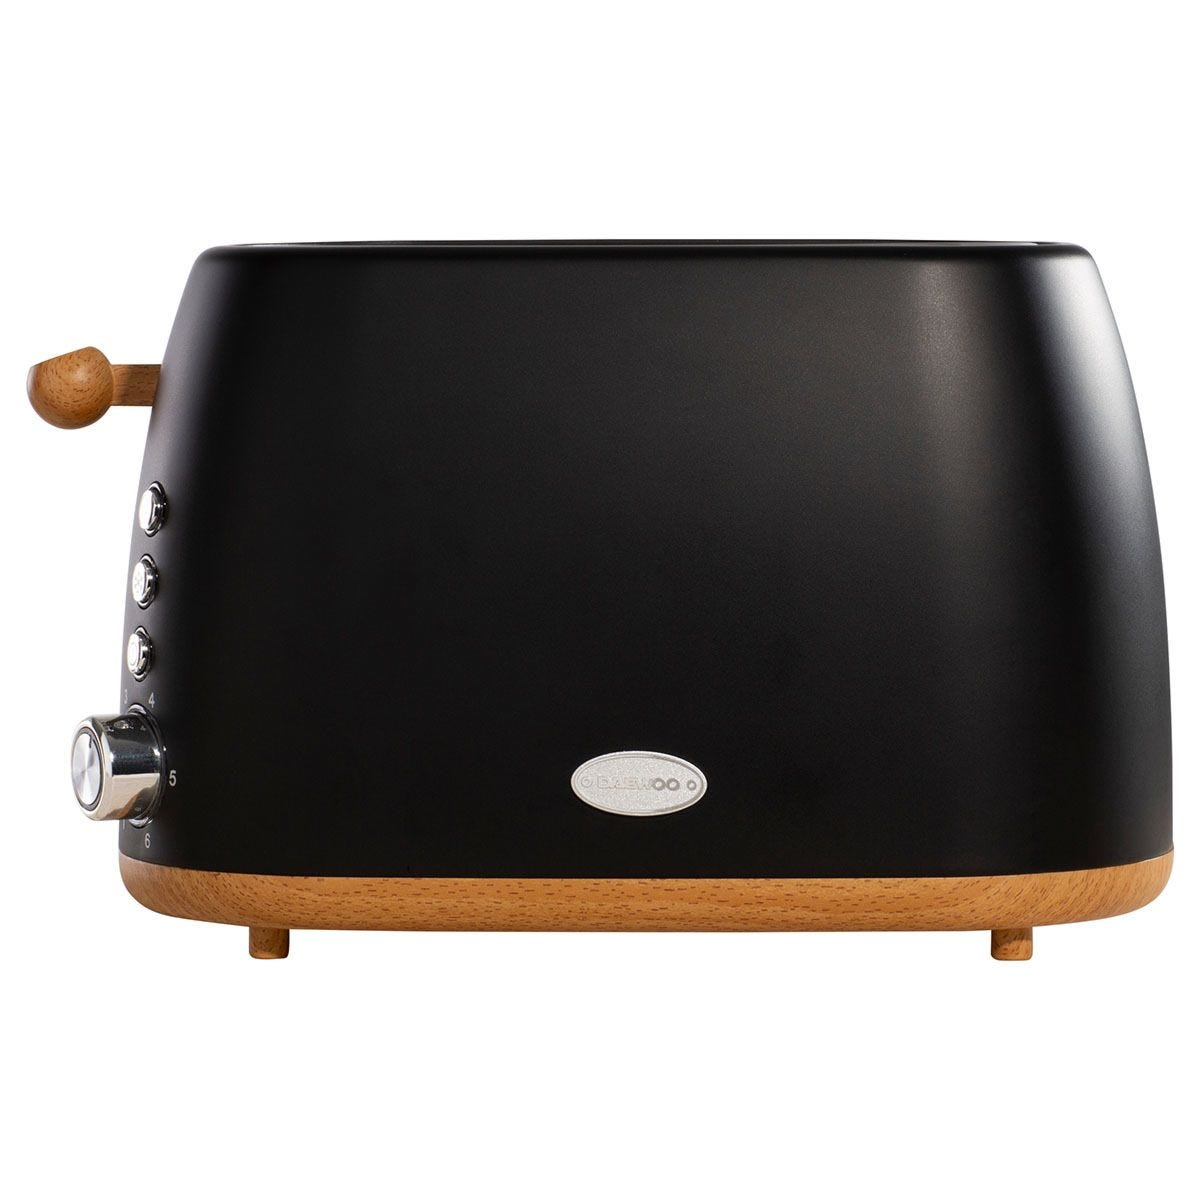 Daewoo SDA1697 Skandik 900W 2-Slice Wide Slot Wood Effect Toaster - Black